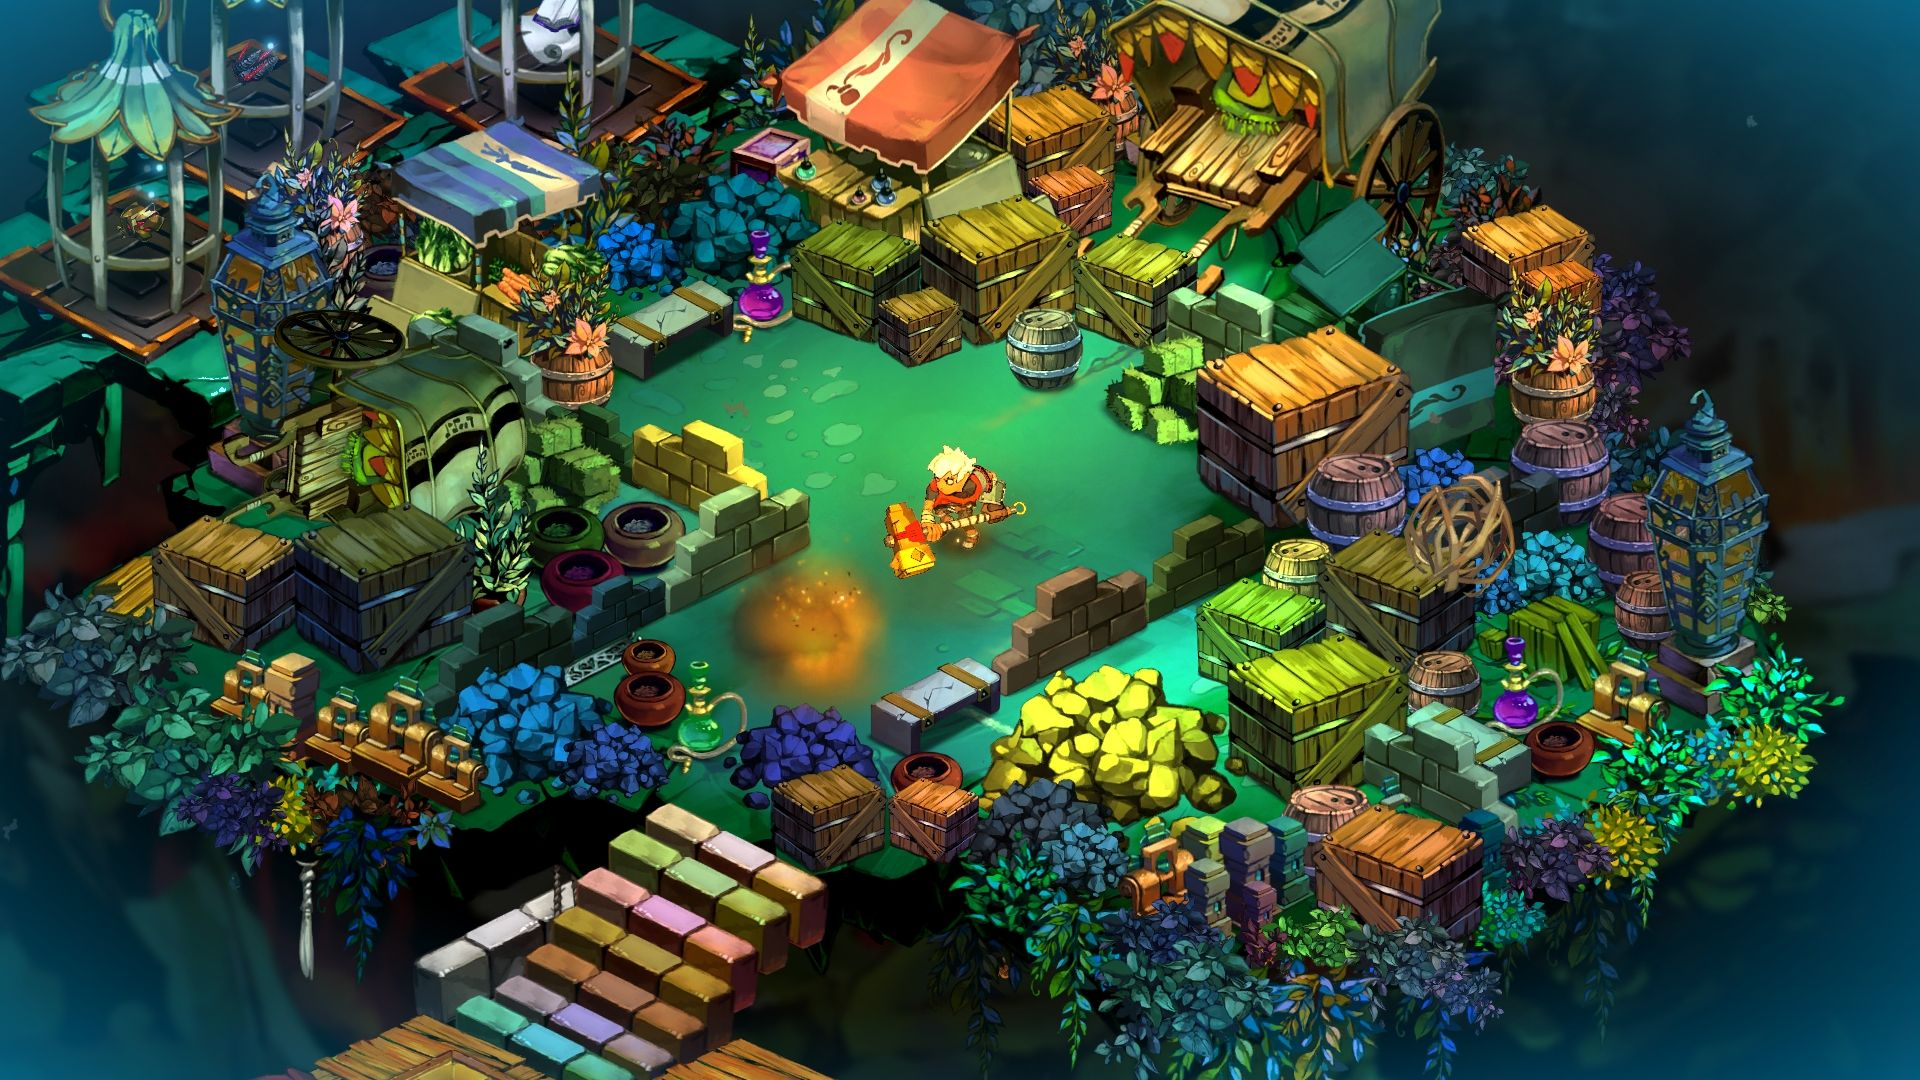 Learn About Bastion From Supergiant Games